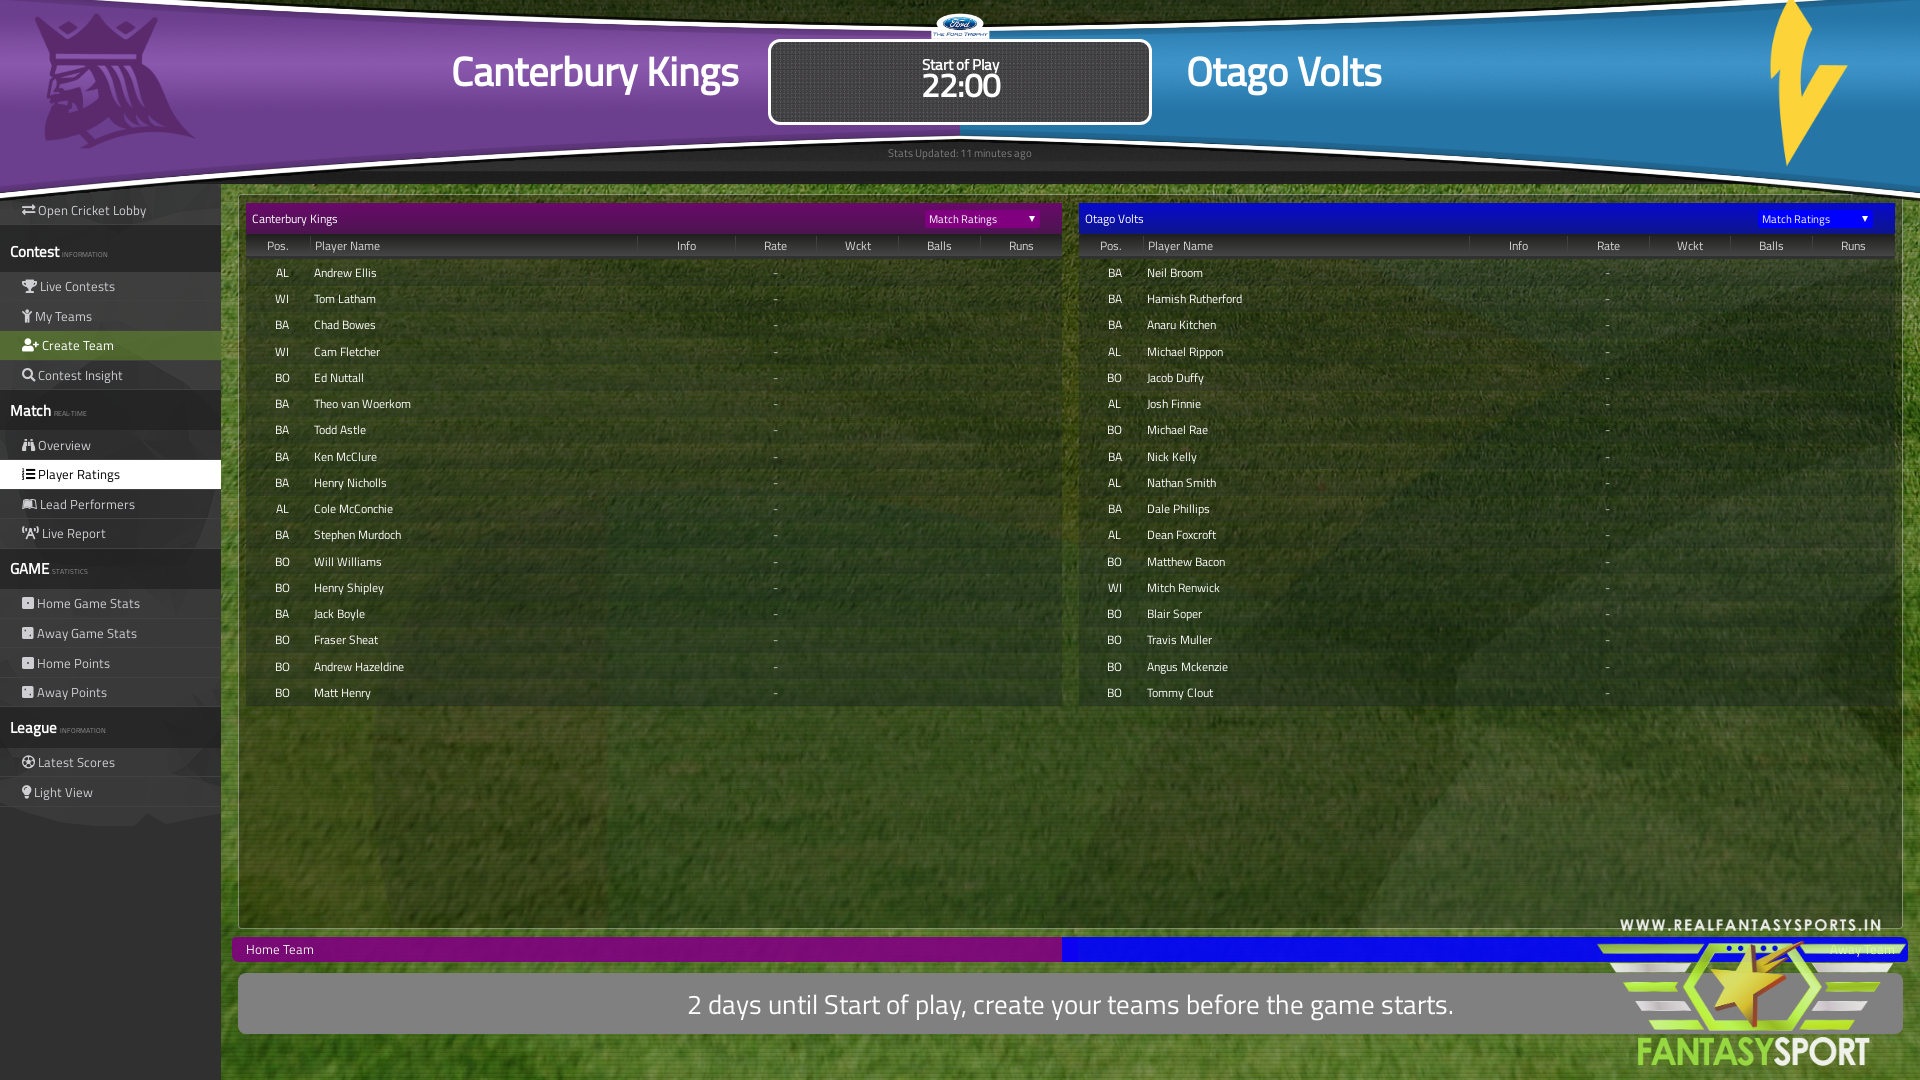 Cricket Match Prediction Canterbury Kings Vs Otago Volts 12th February 2020